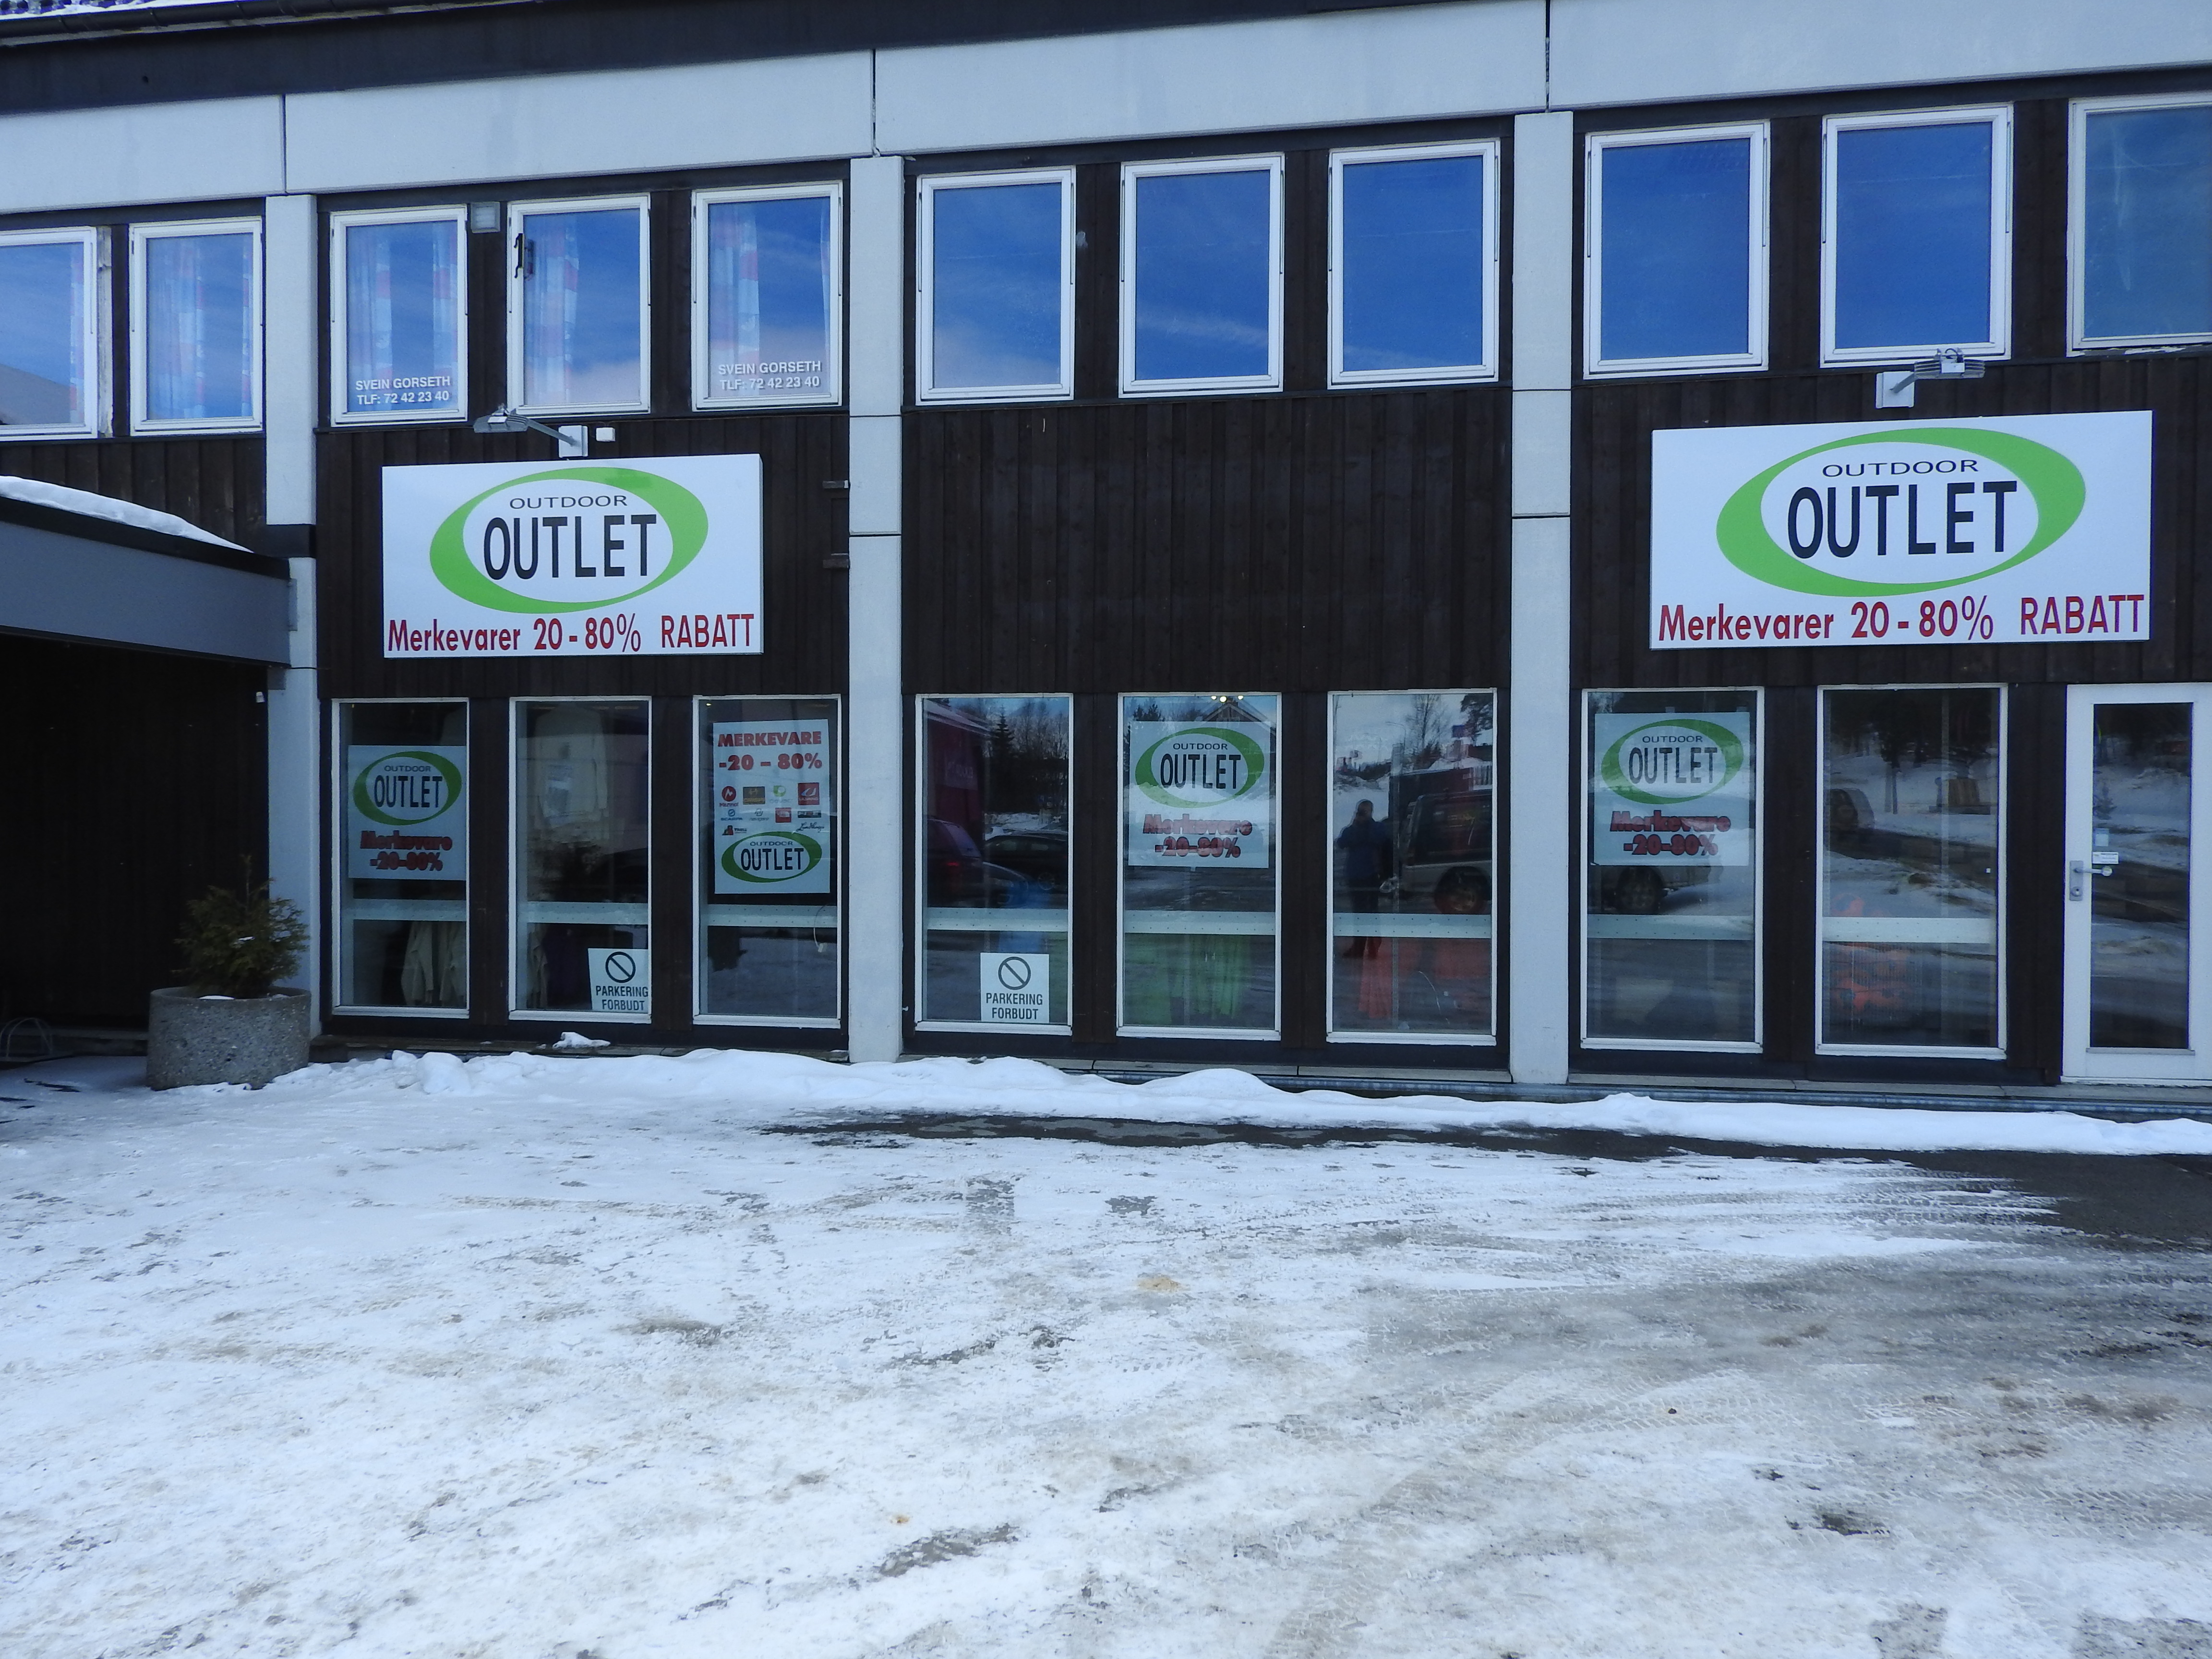 Outdoor outlet oppdal fishspot for Pa fishing license prices